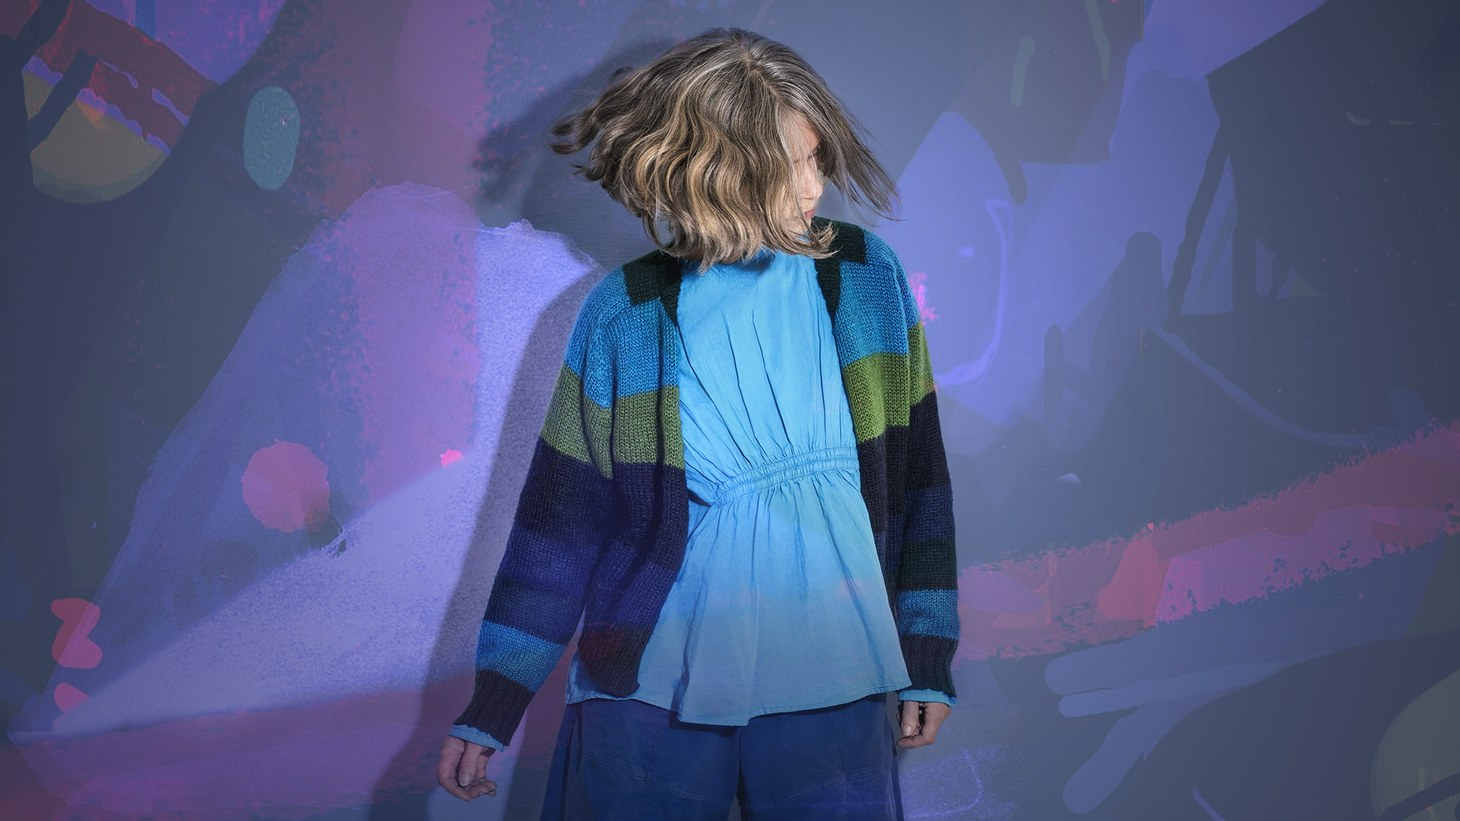 Forfun, the new EP by experimental Argentine artist Juana Molina cameabout after an airline lost her band's backline right before a big festival show.